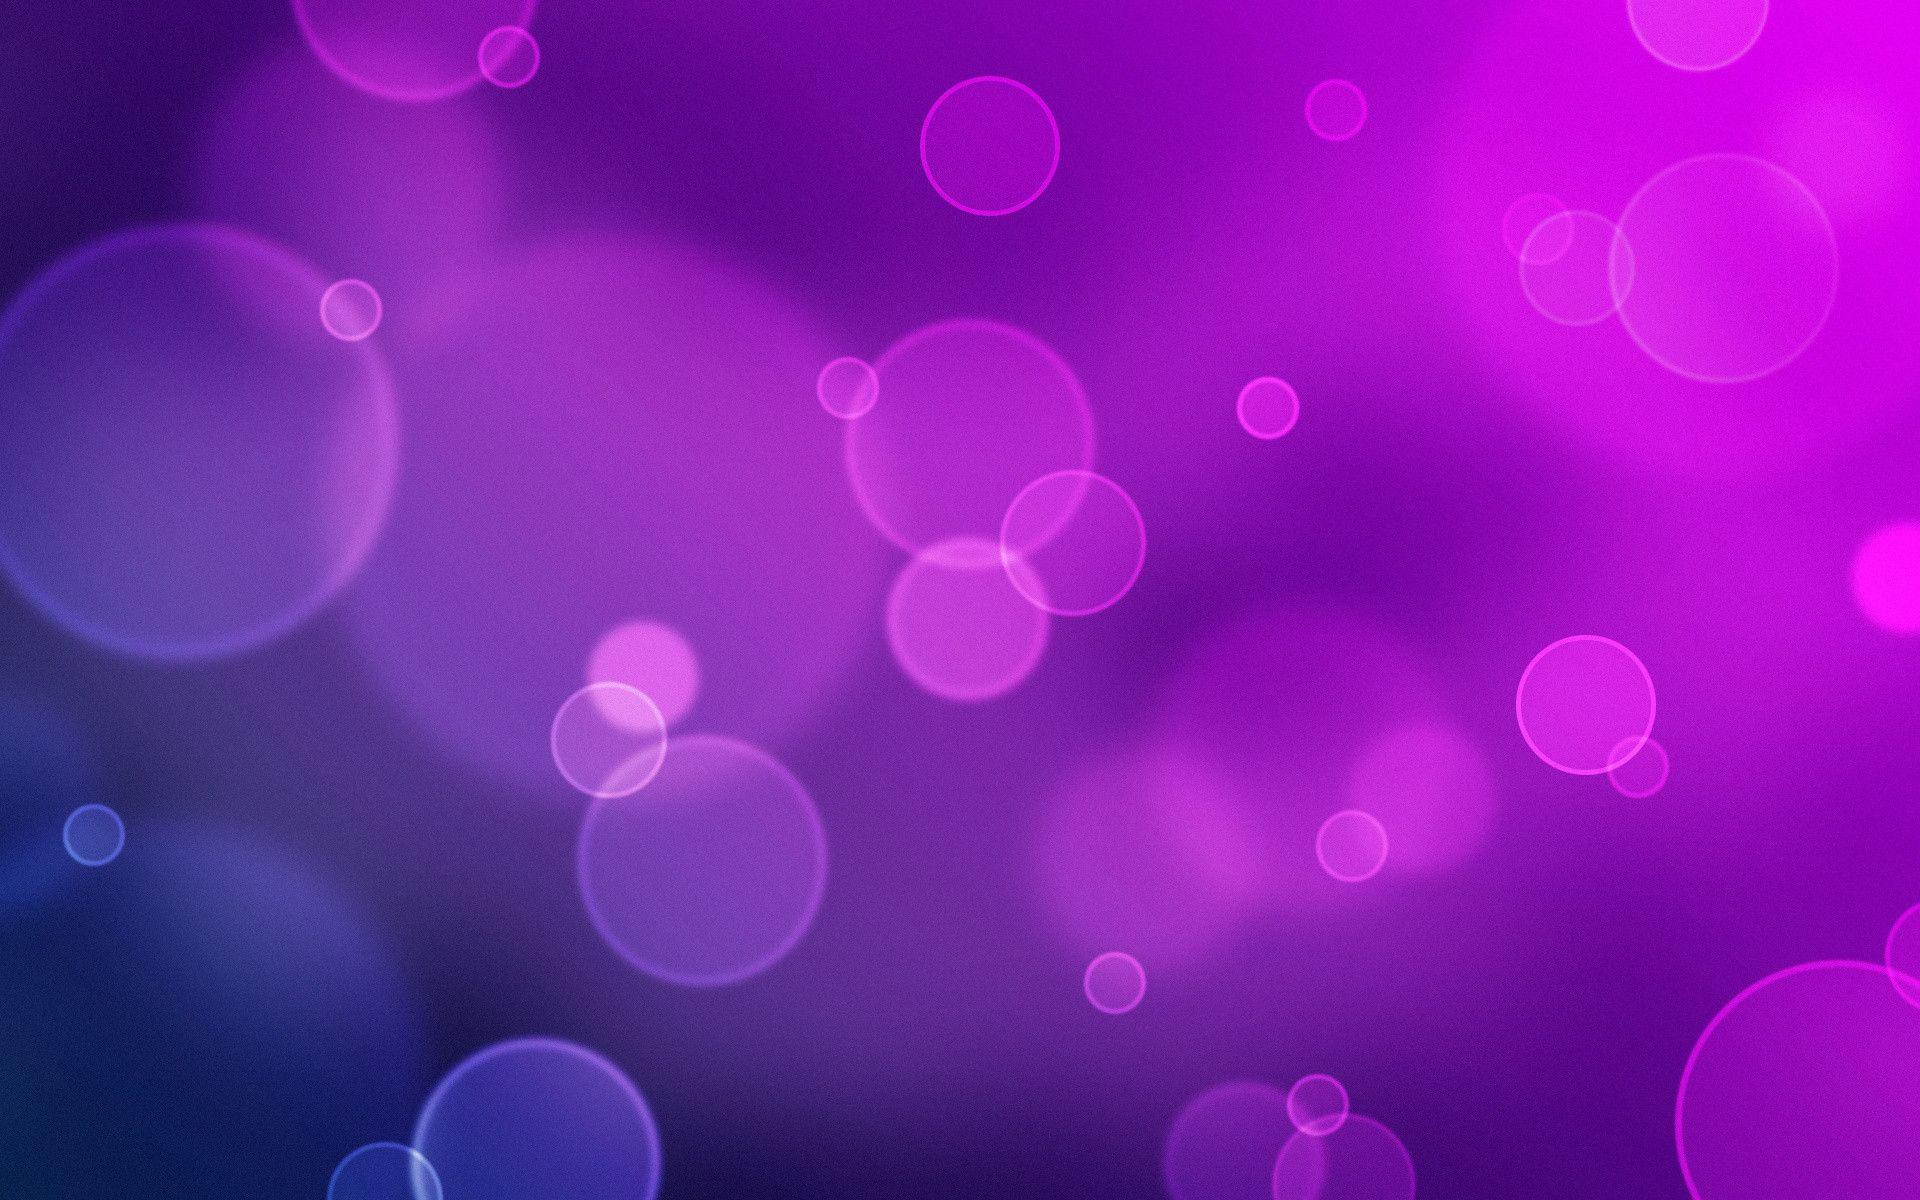 Free Purple Wallpaper Backgrounds   Wallpaper Cave Fantasy Land wallpaper   1060604